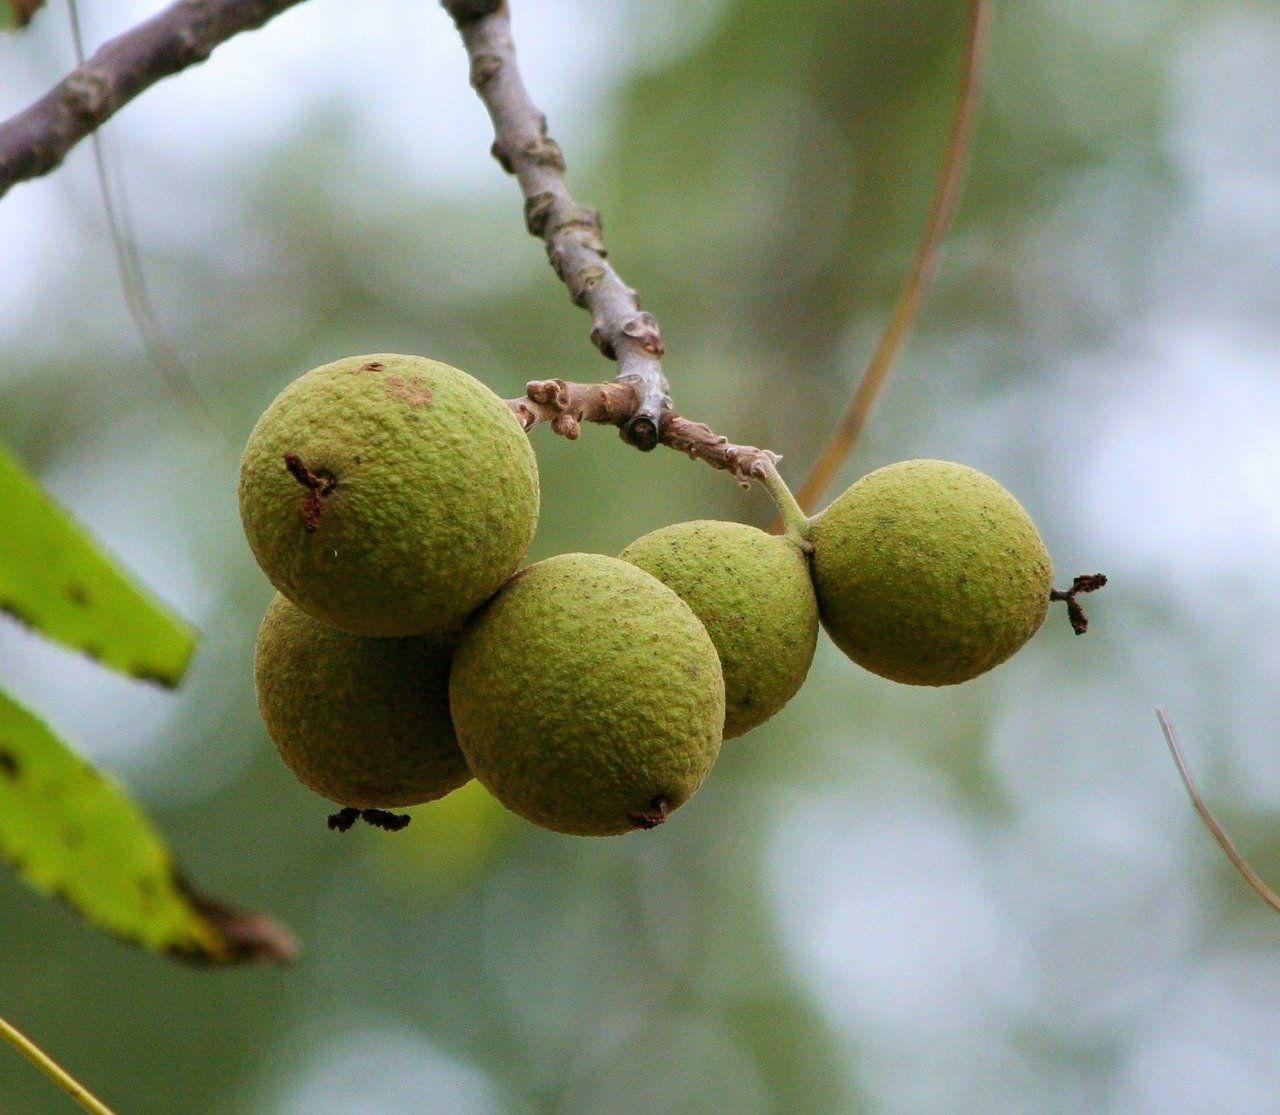 Black Walnut hulls hanging from a black walnut tree, encased in a tough green outer covering.